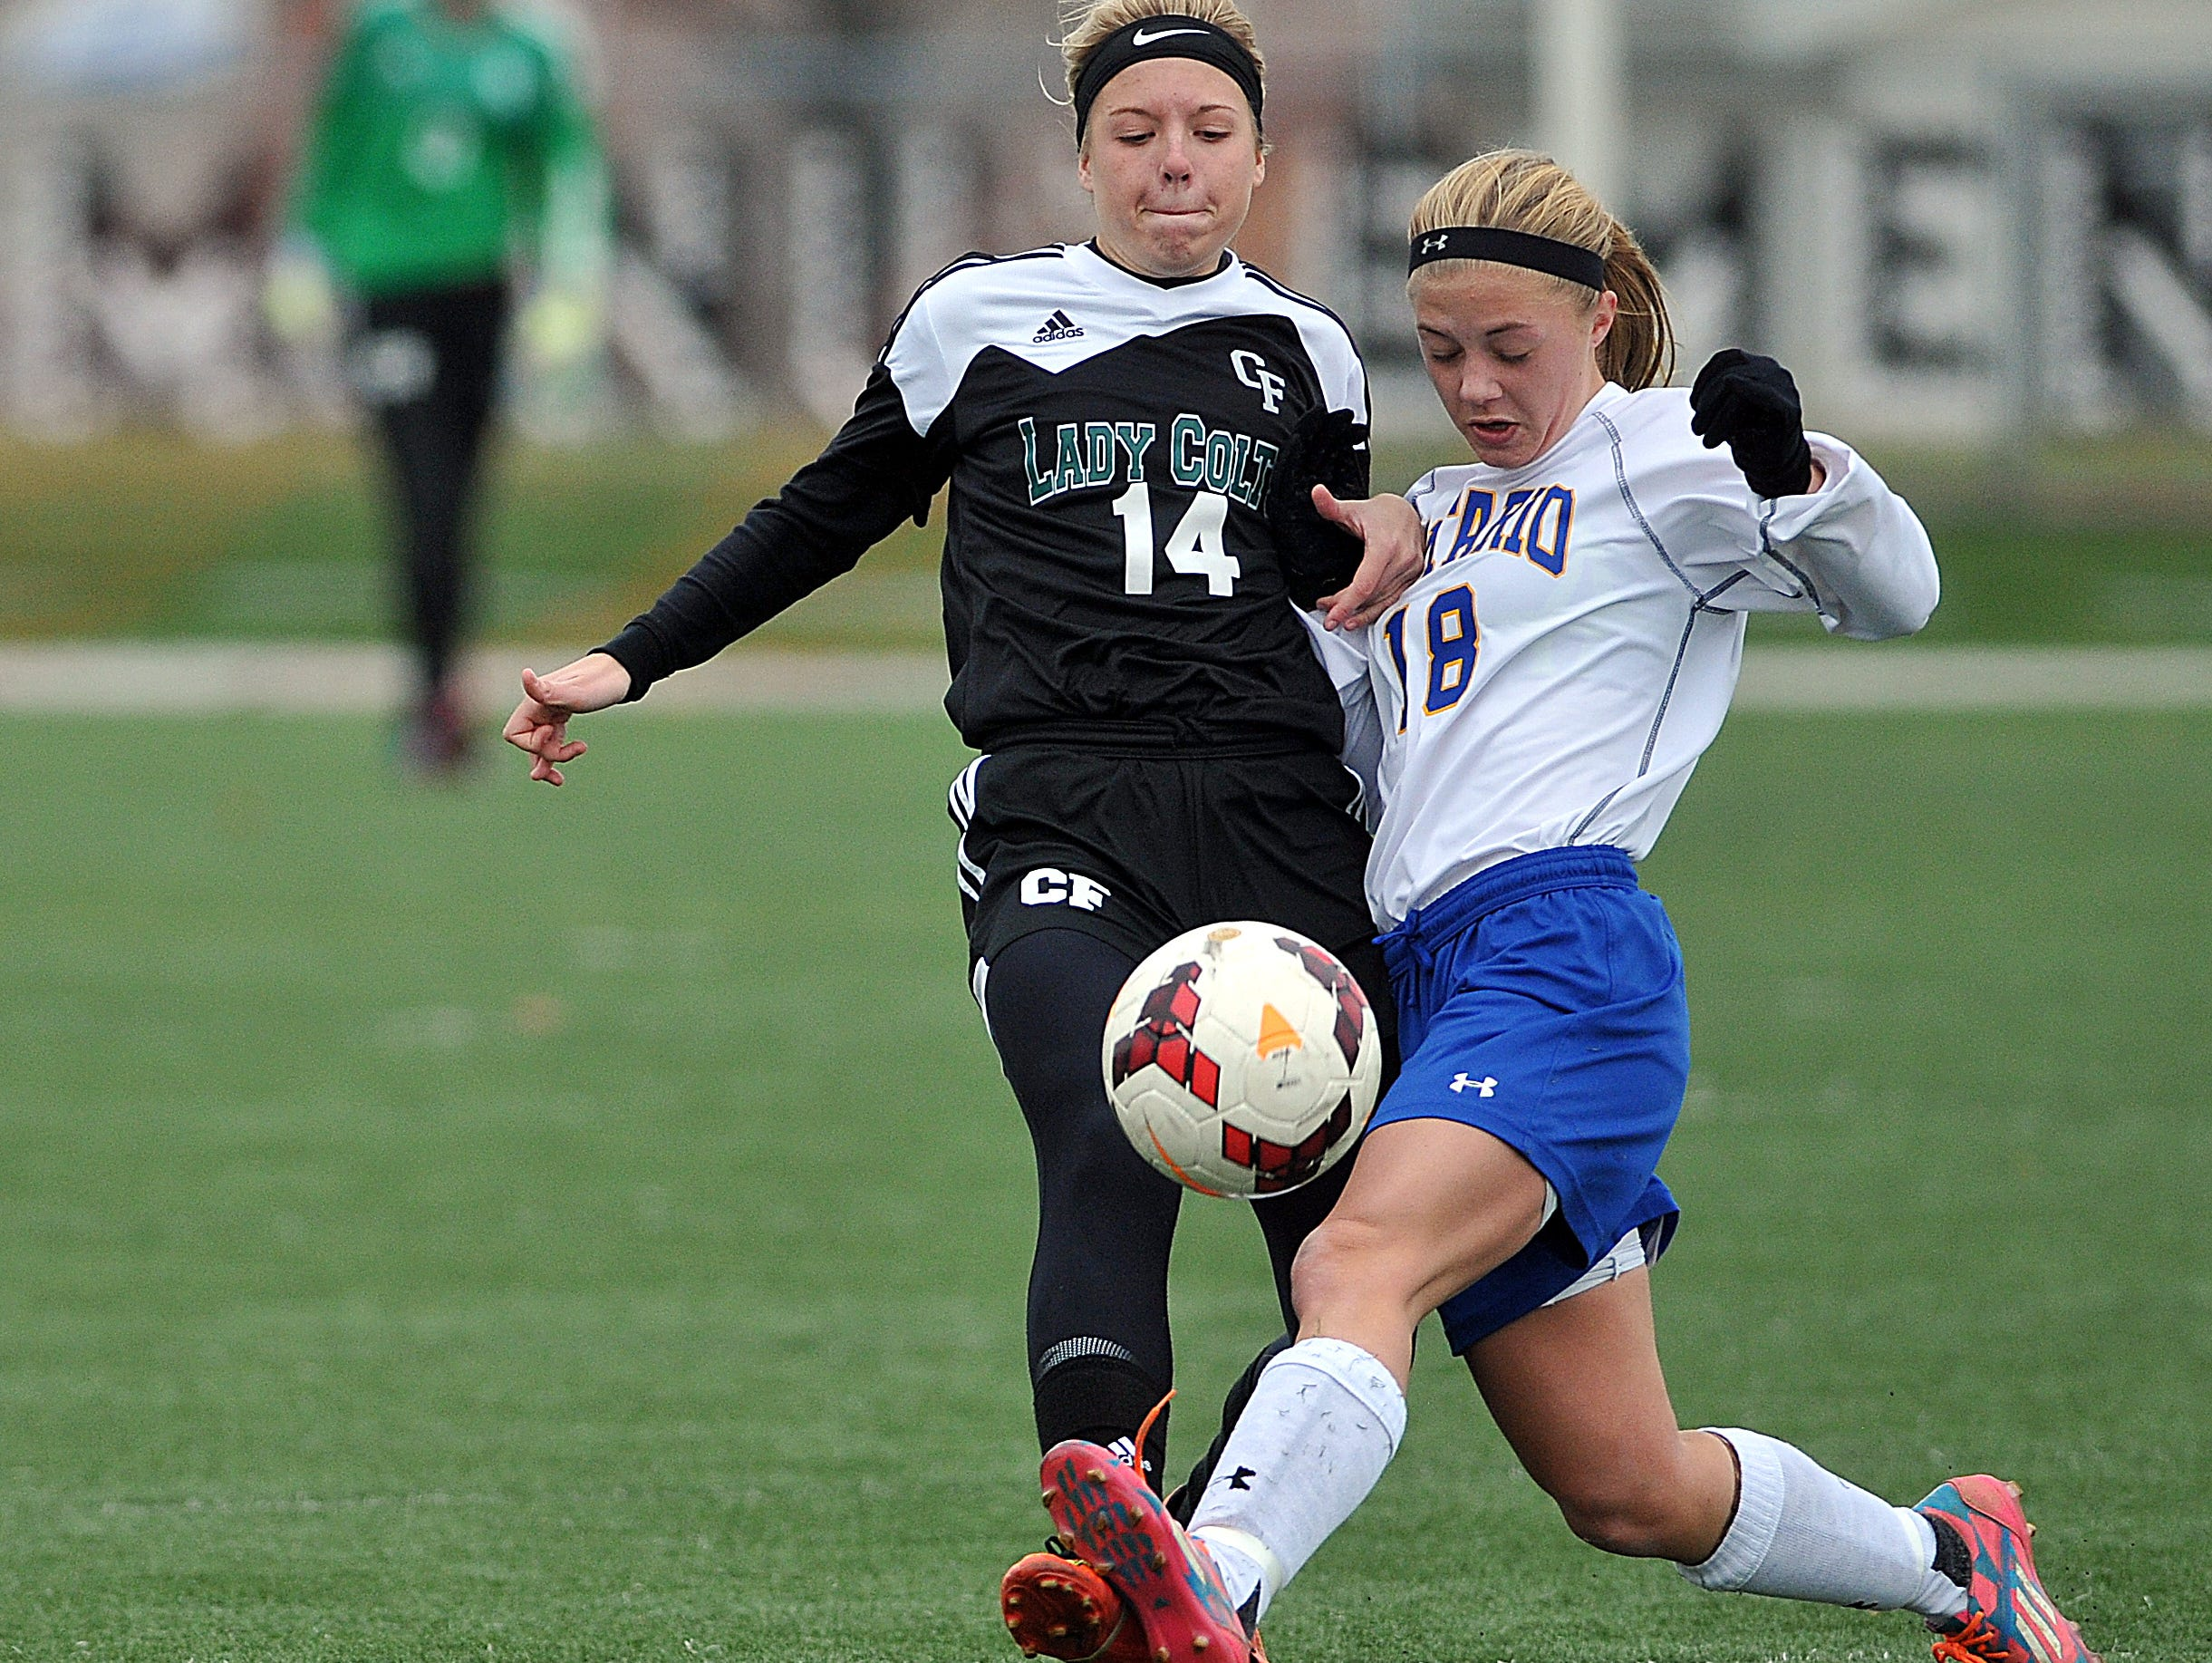 Clear Fork's Brittney Hart and Ontario's Bria Meisse battle for the ball during the girls soccer district championships Saturday at Ashland High School.